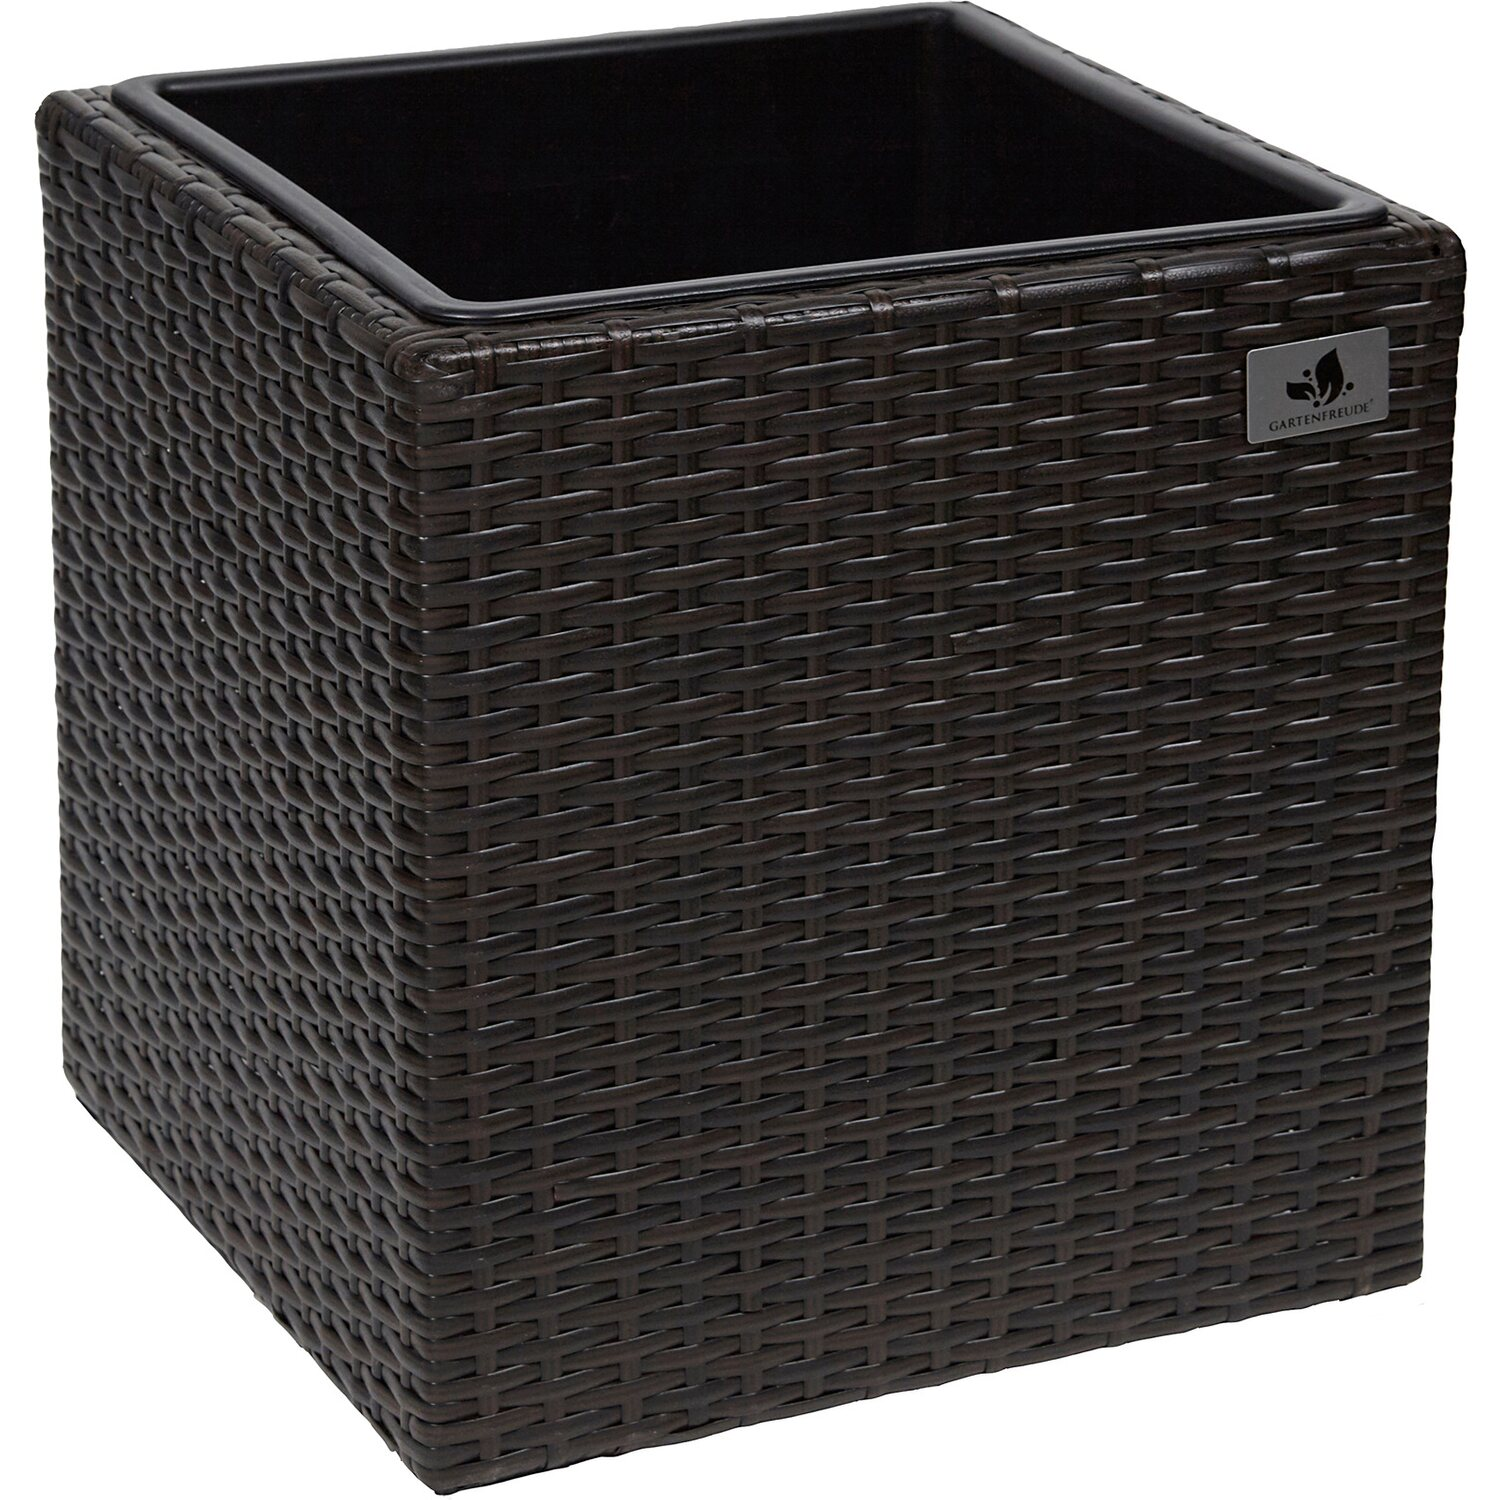 gartenfreude pflanzk bel polyrattan 36 cm x 36 cm bicolour braun kaufen bei obi. Black Bedroom Furniture Sets. Home Design Ideas